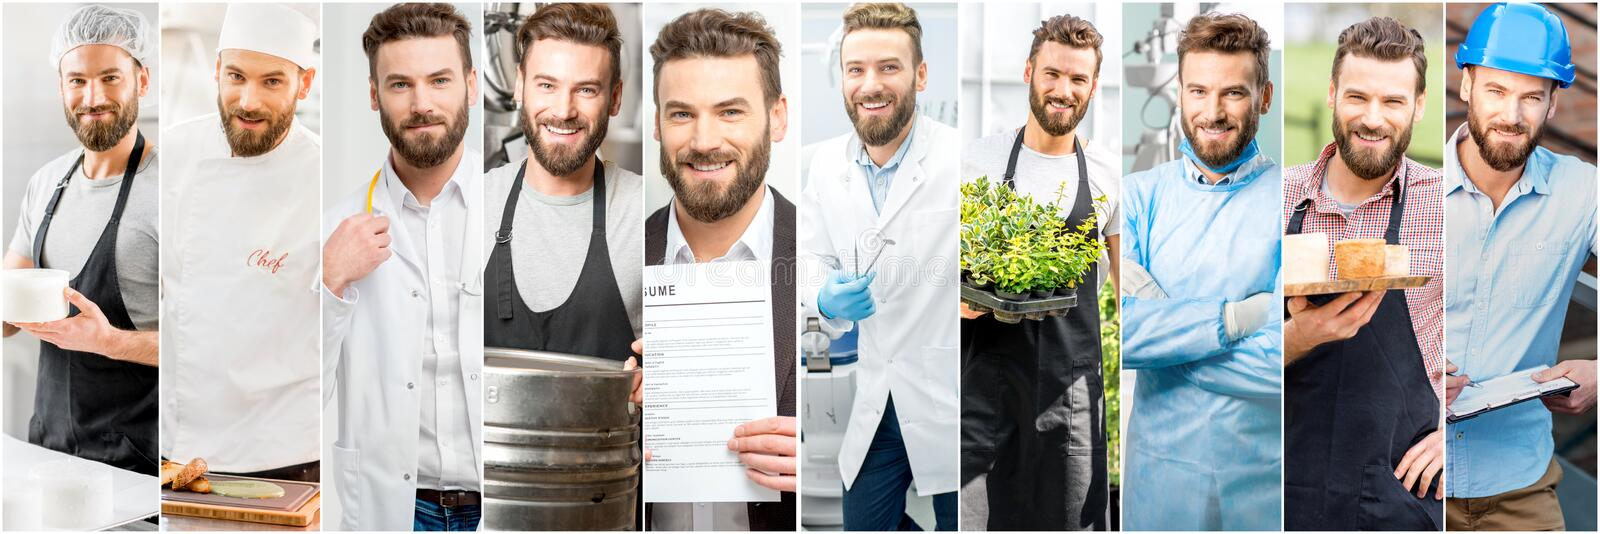 Collage di un uomo con differenti professioni fotografia stock